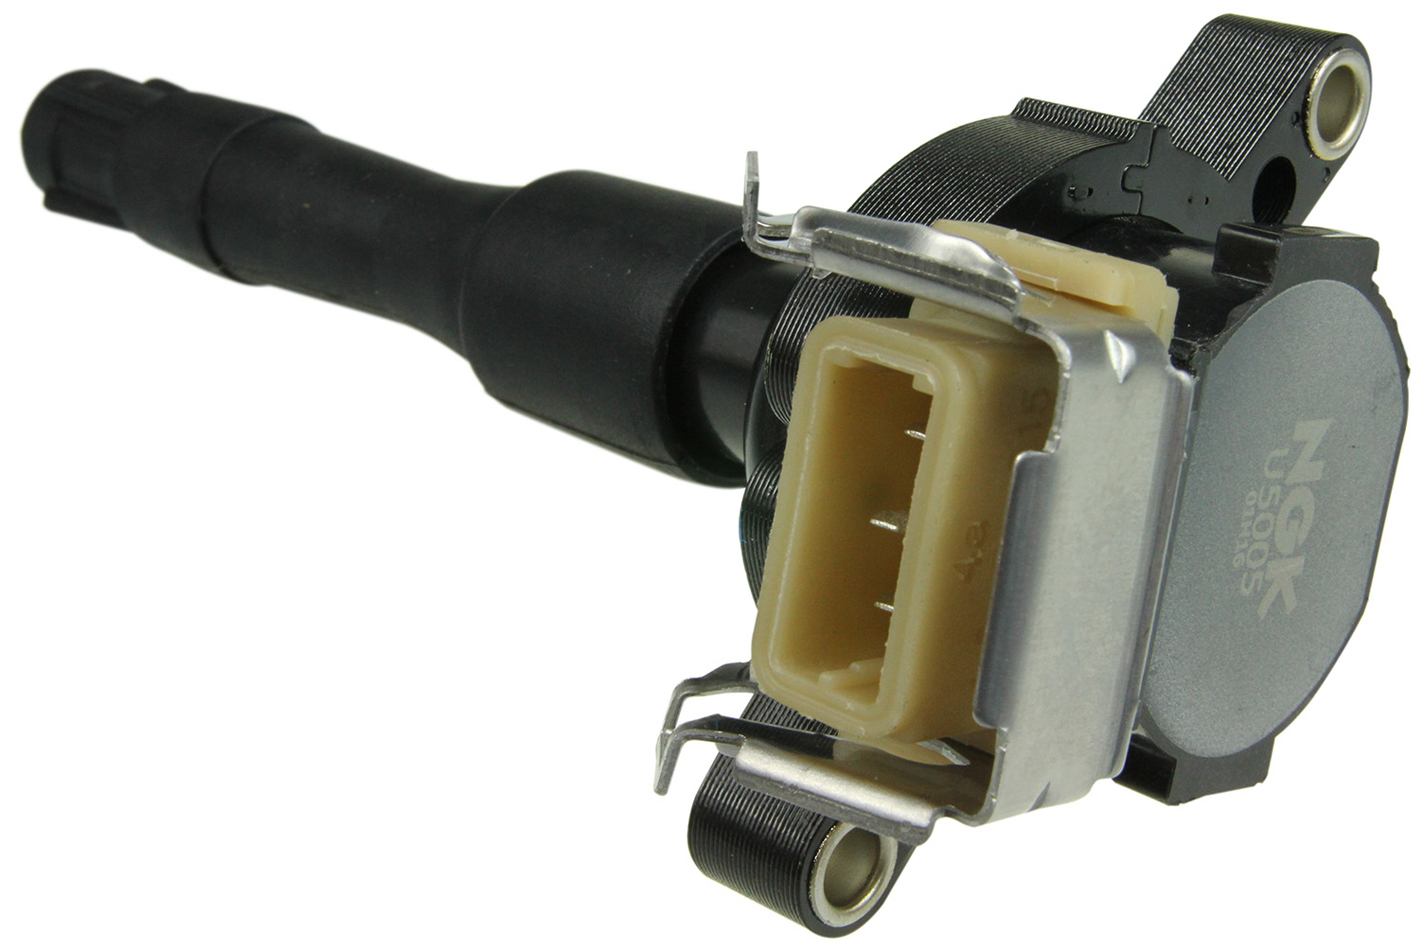 NGK U5005 Ignition Coil Pack, Coil-On-Plug, OE Specs, Black, Each